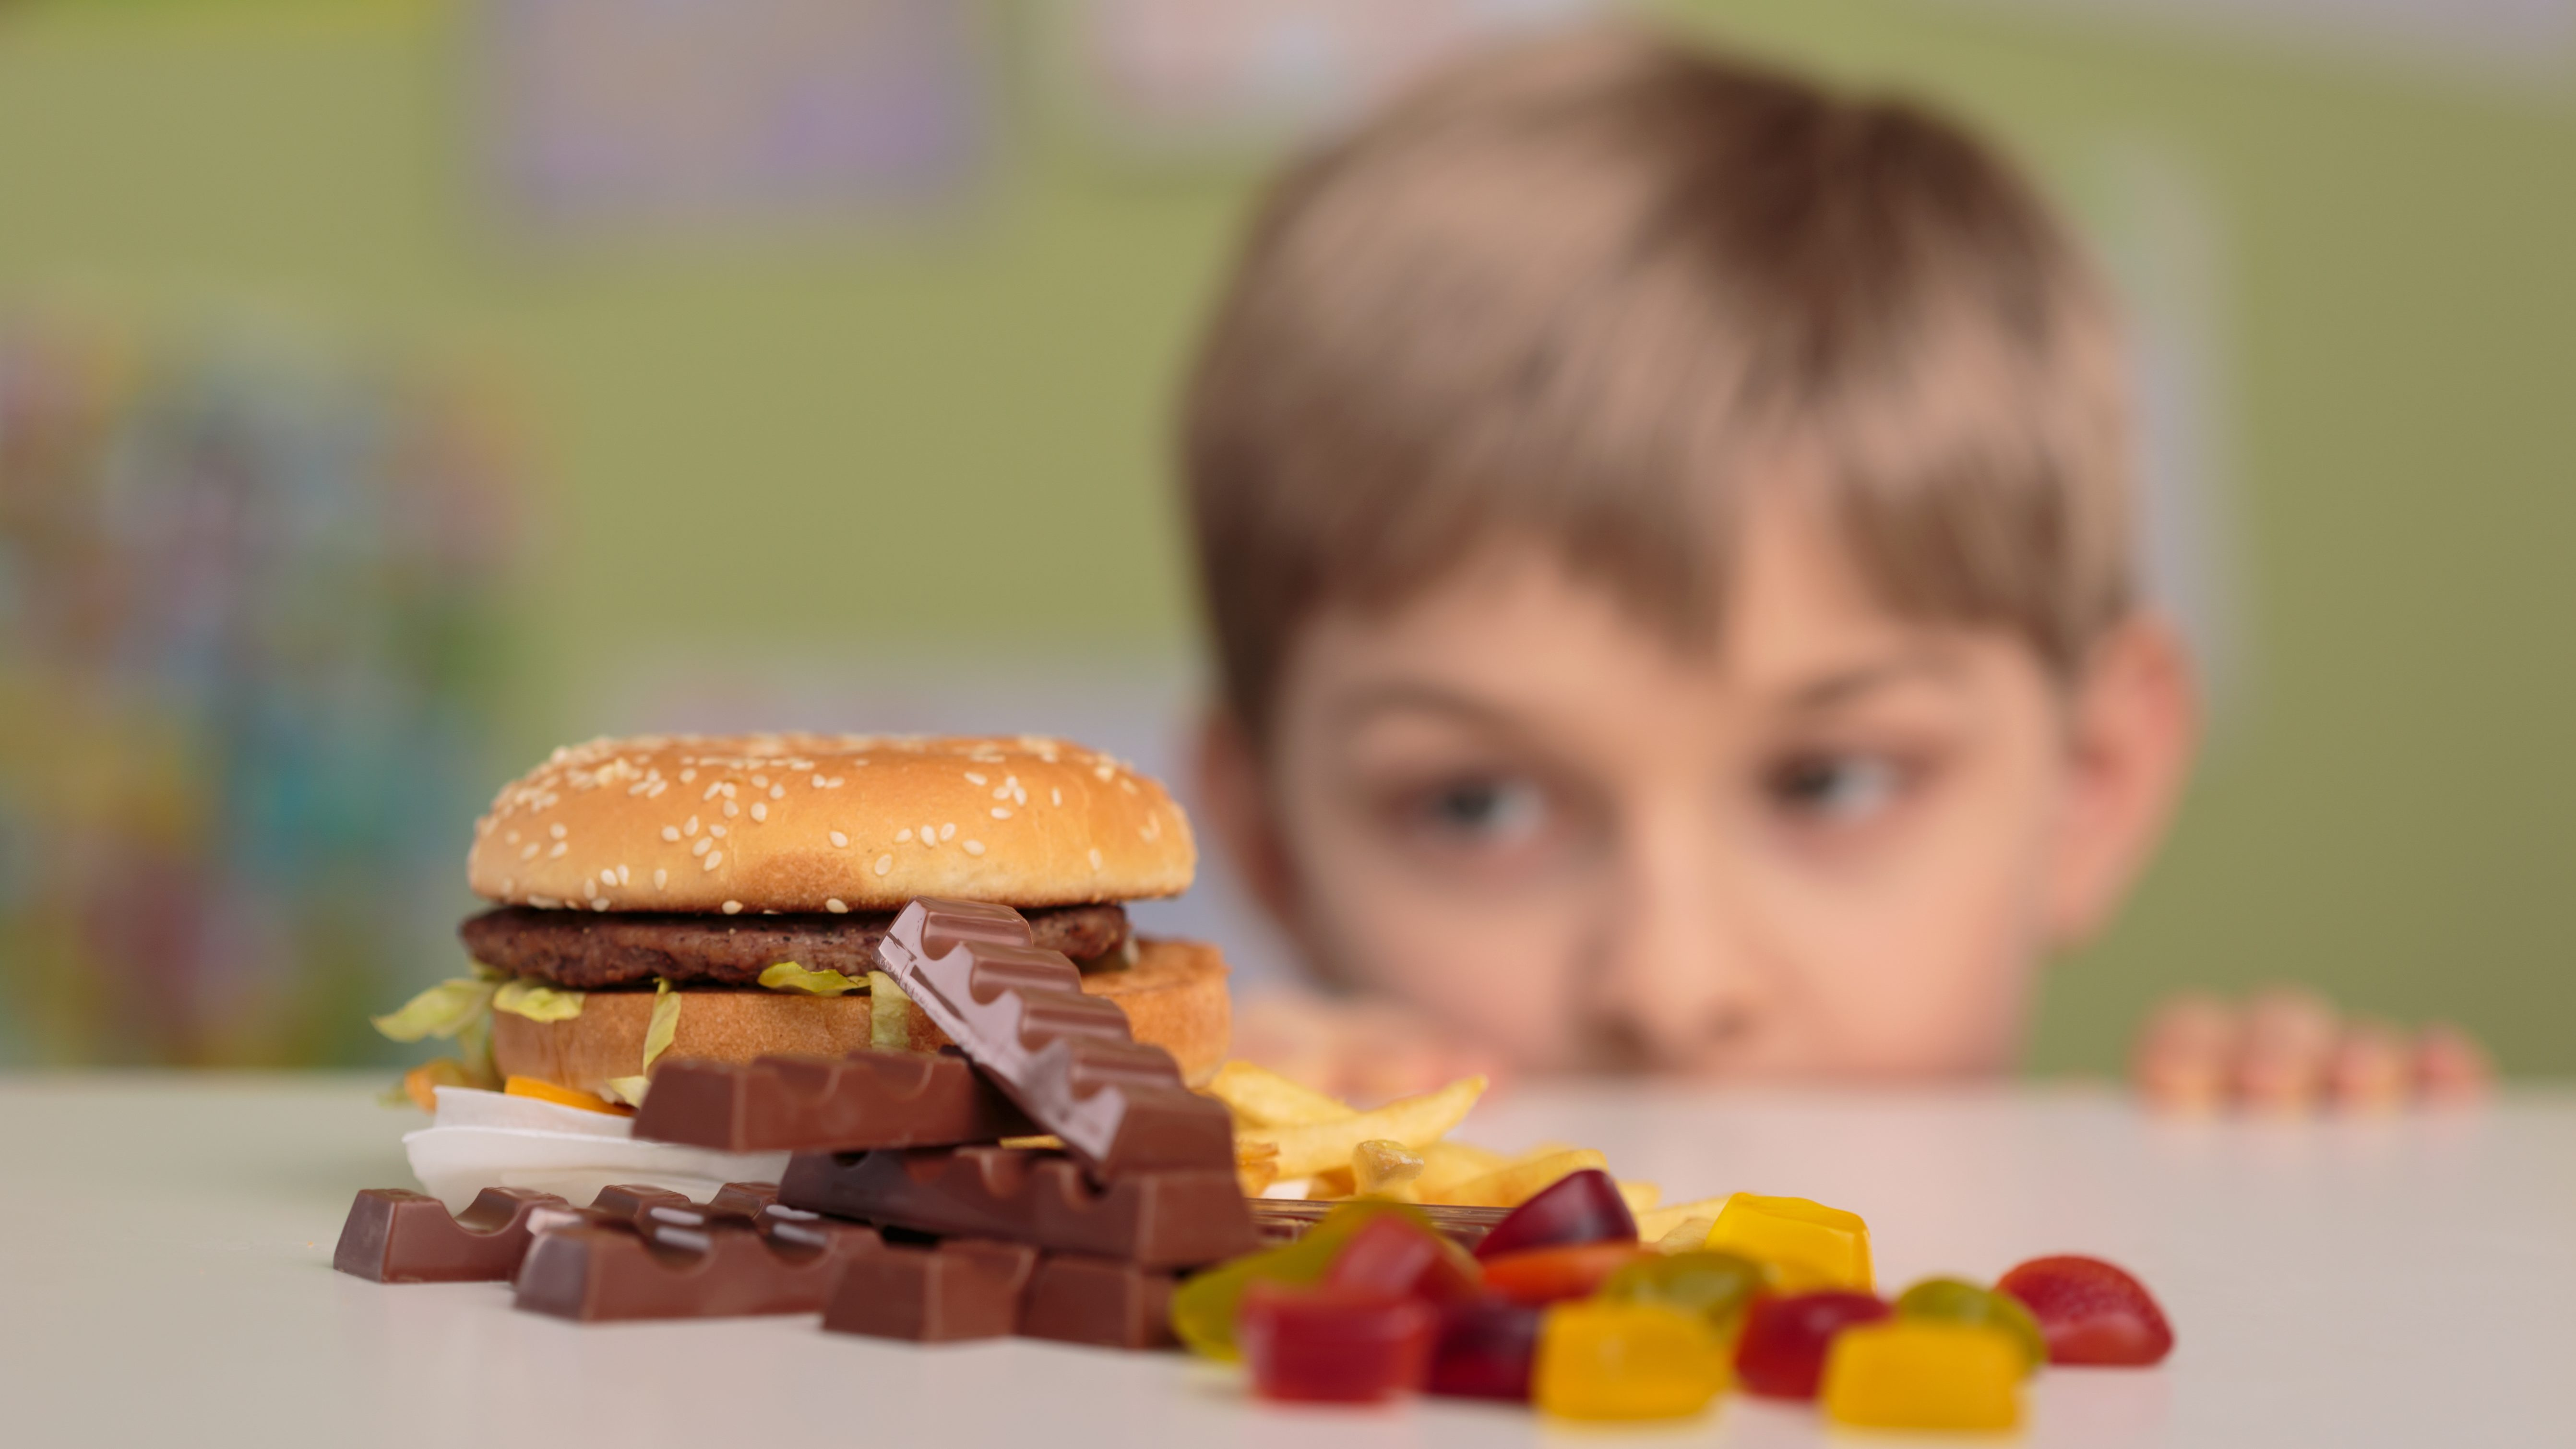 Heart And Stroke Foundation Calling For Ban On Marketing Unhealthy Food To Kids